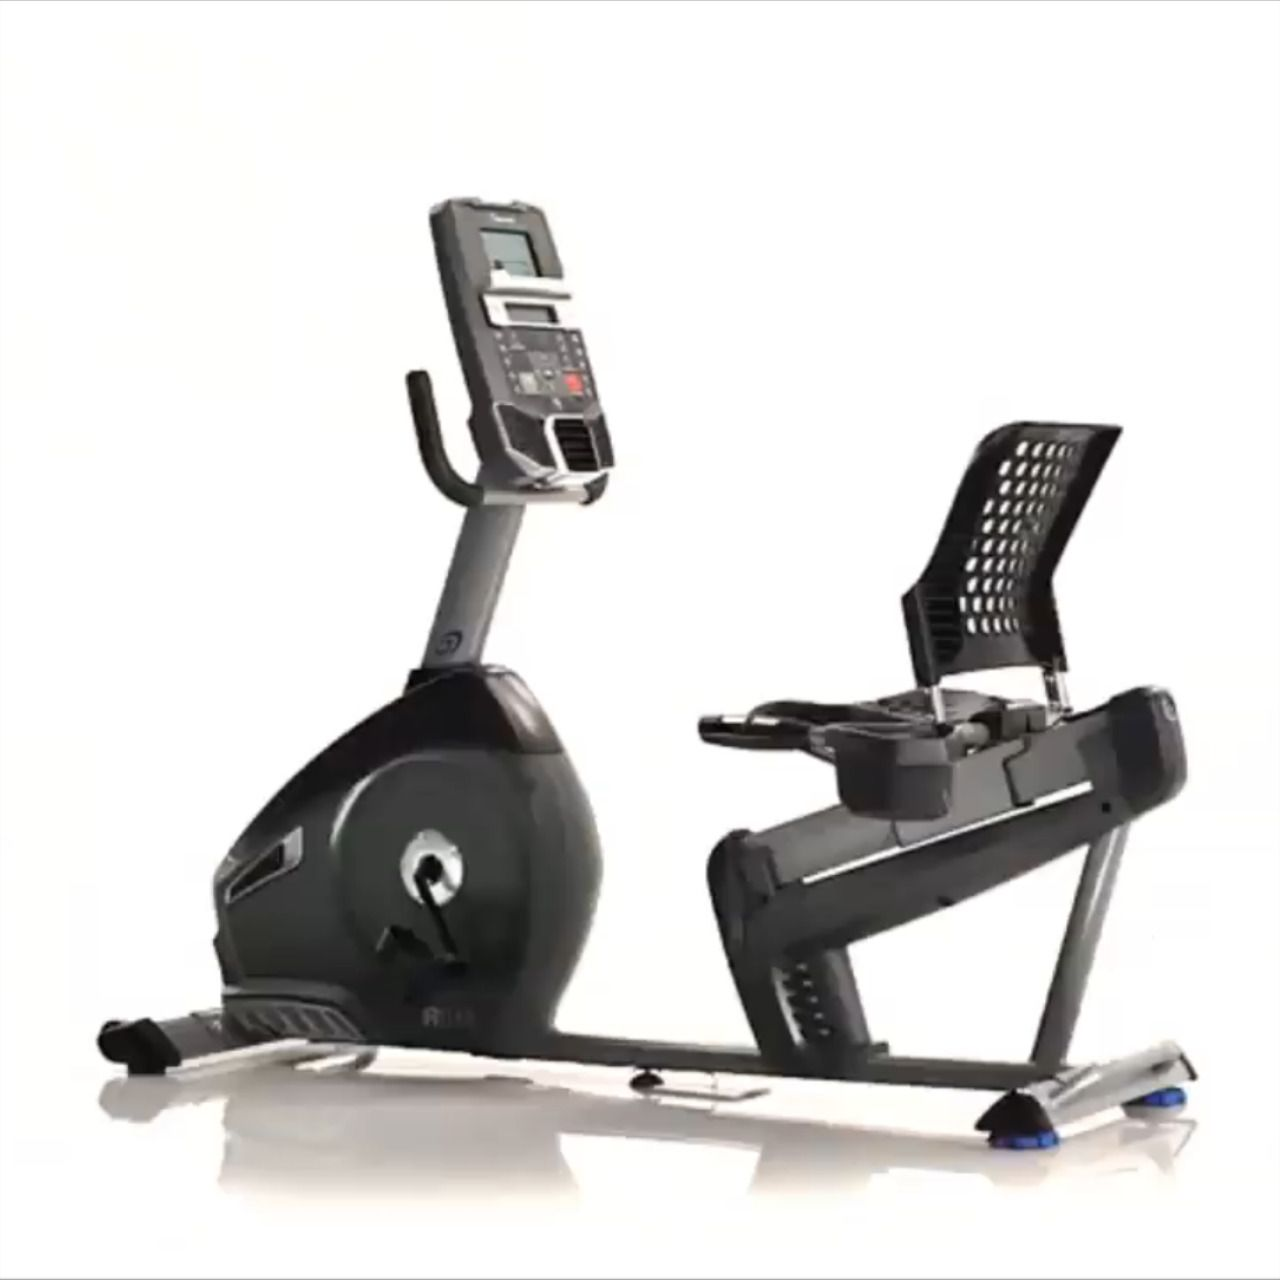 Stationary Bike Vs Elliptical Recumbent Bike Workout Stationary Bike Bike